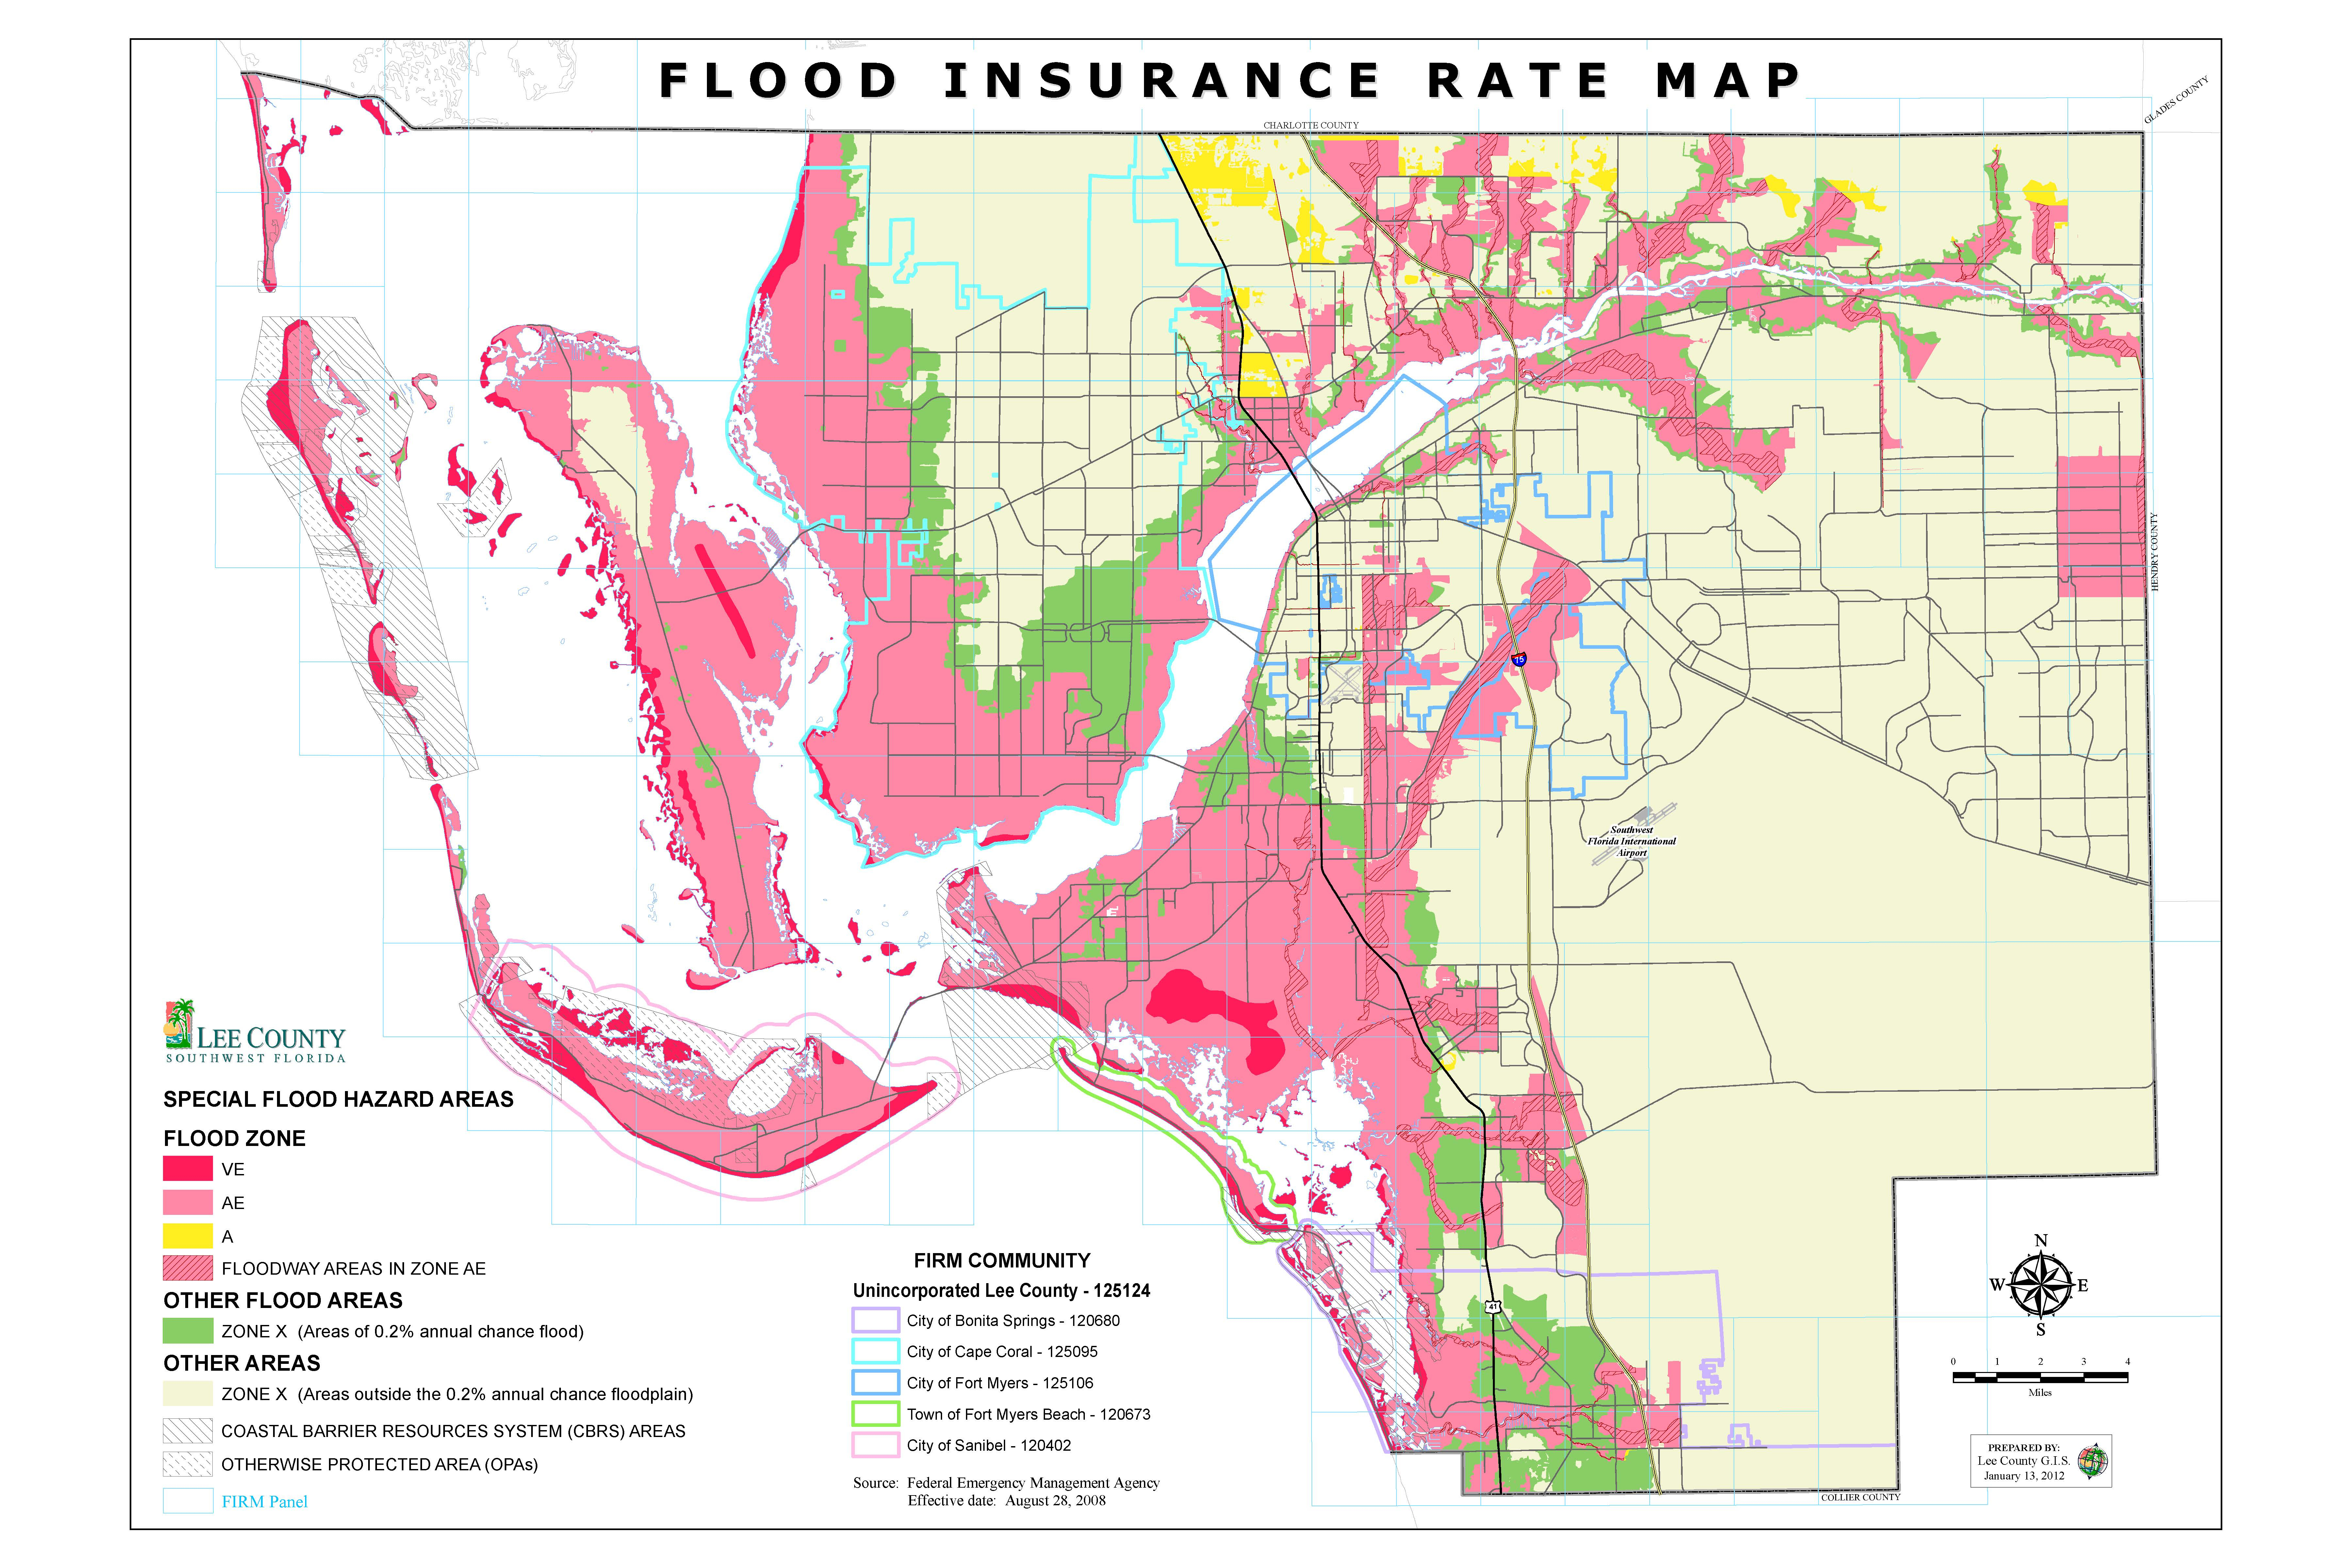 Firm Map Florida Flood Insurance Rate Map Florida Perfect Firm Maps - Flood Insurance Rate Map Cape Coral Florida